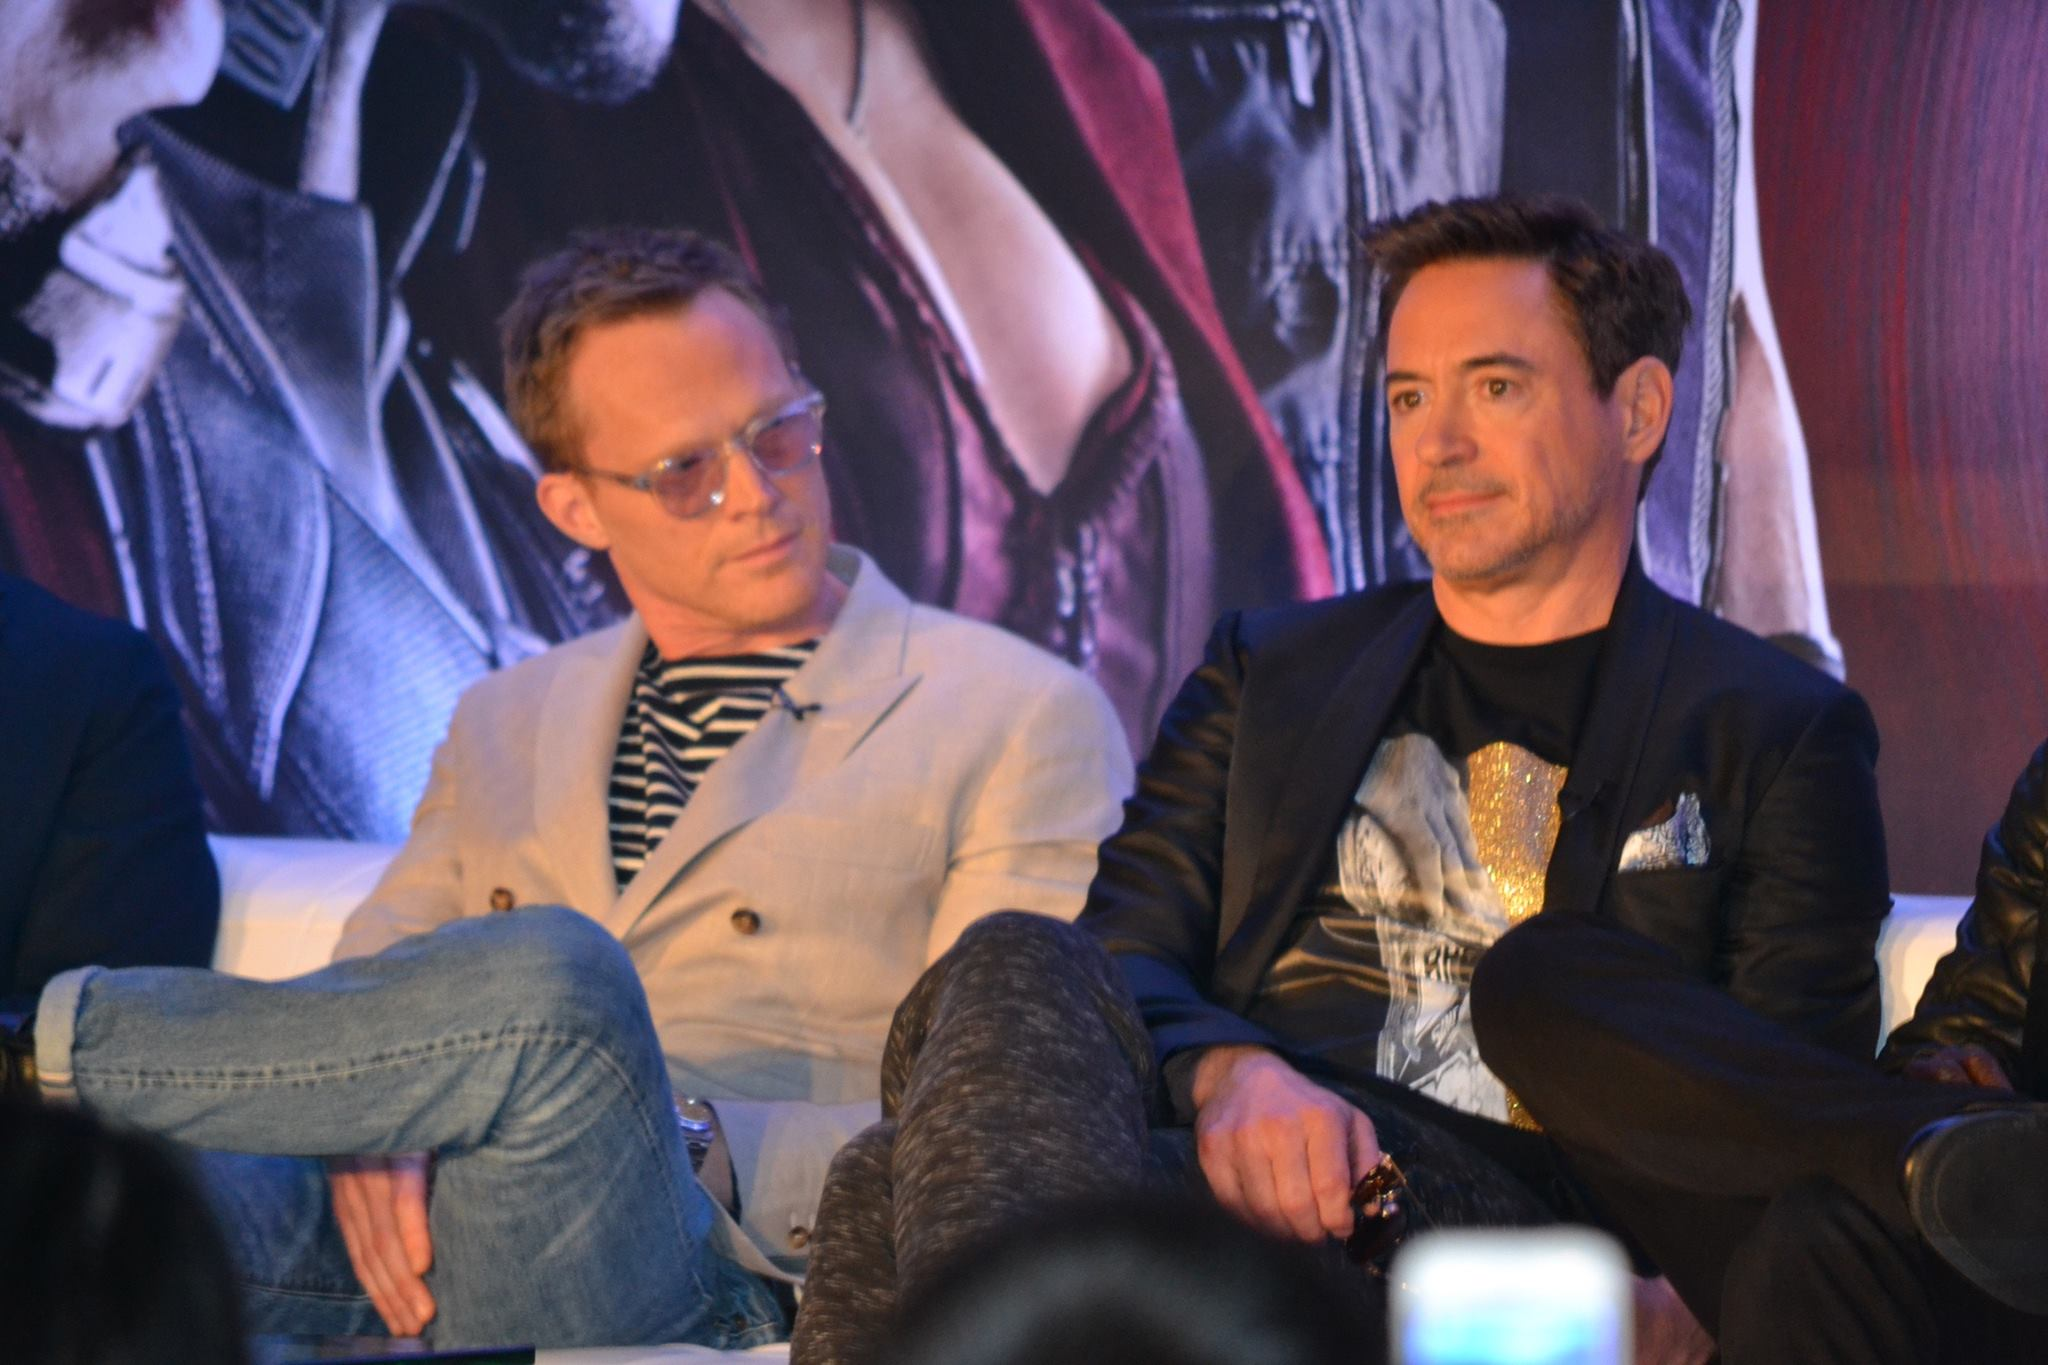 12976773 988487971235263 7475036090795528552 o Six best moments of #TeamCap Civil War press conference: Smack talking Team Iron Man, Stucky, and more